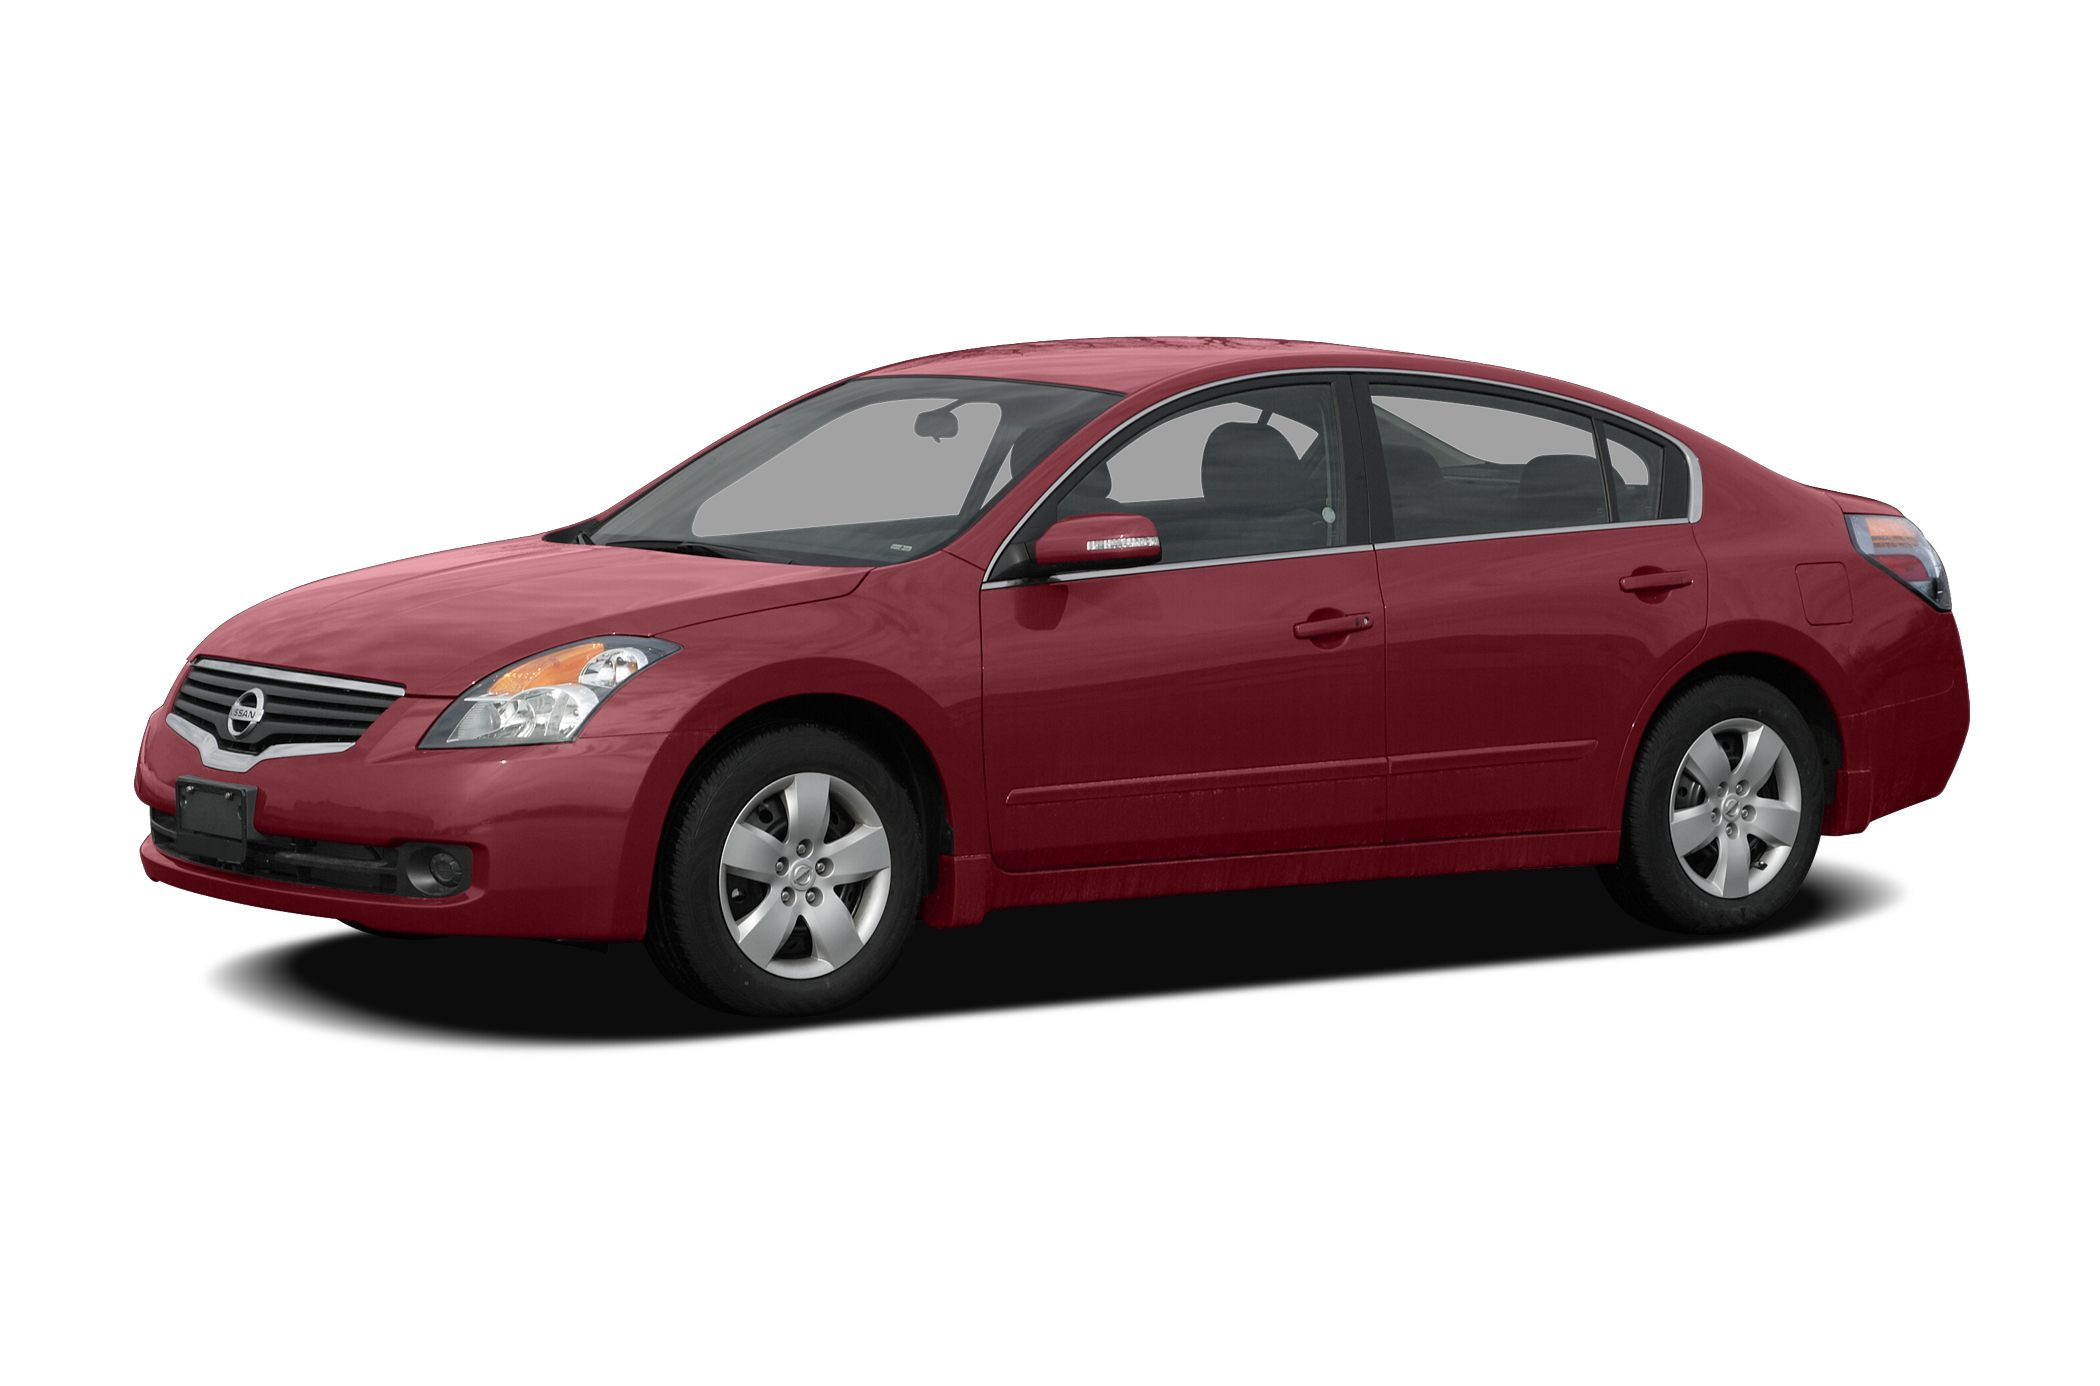 2007 Nissan Altima 3.5 SE Sedan for sale in New York for $6,995 with 99,778 miles.